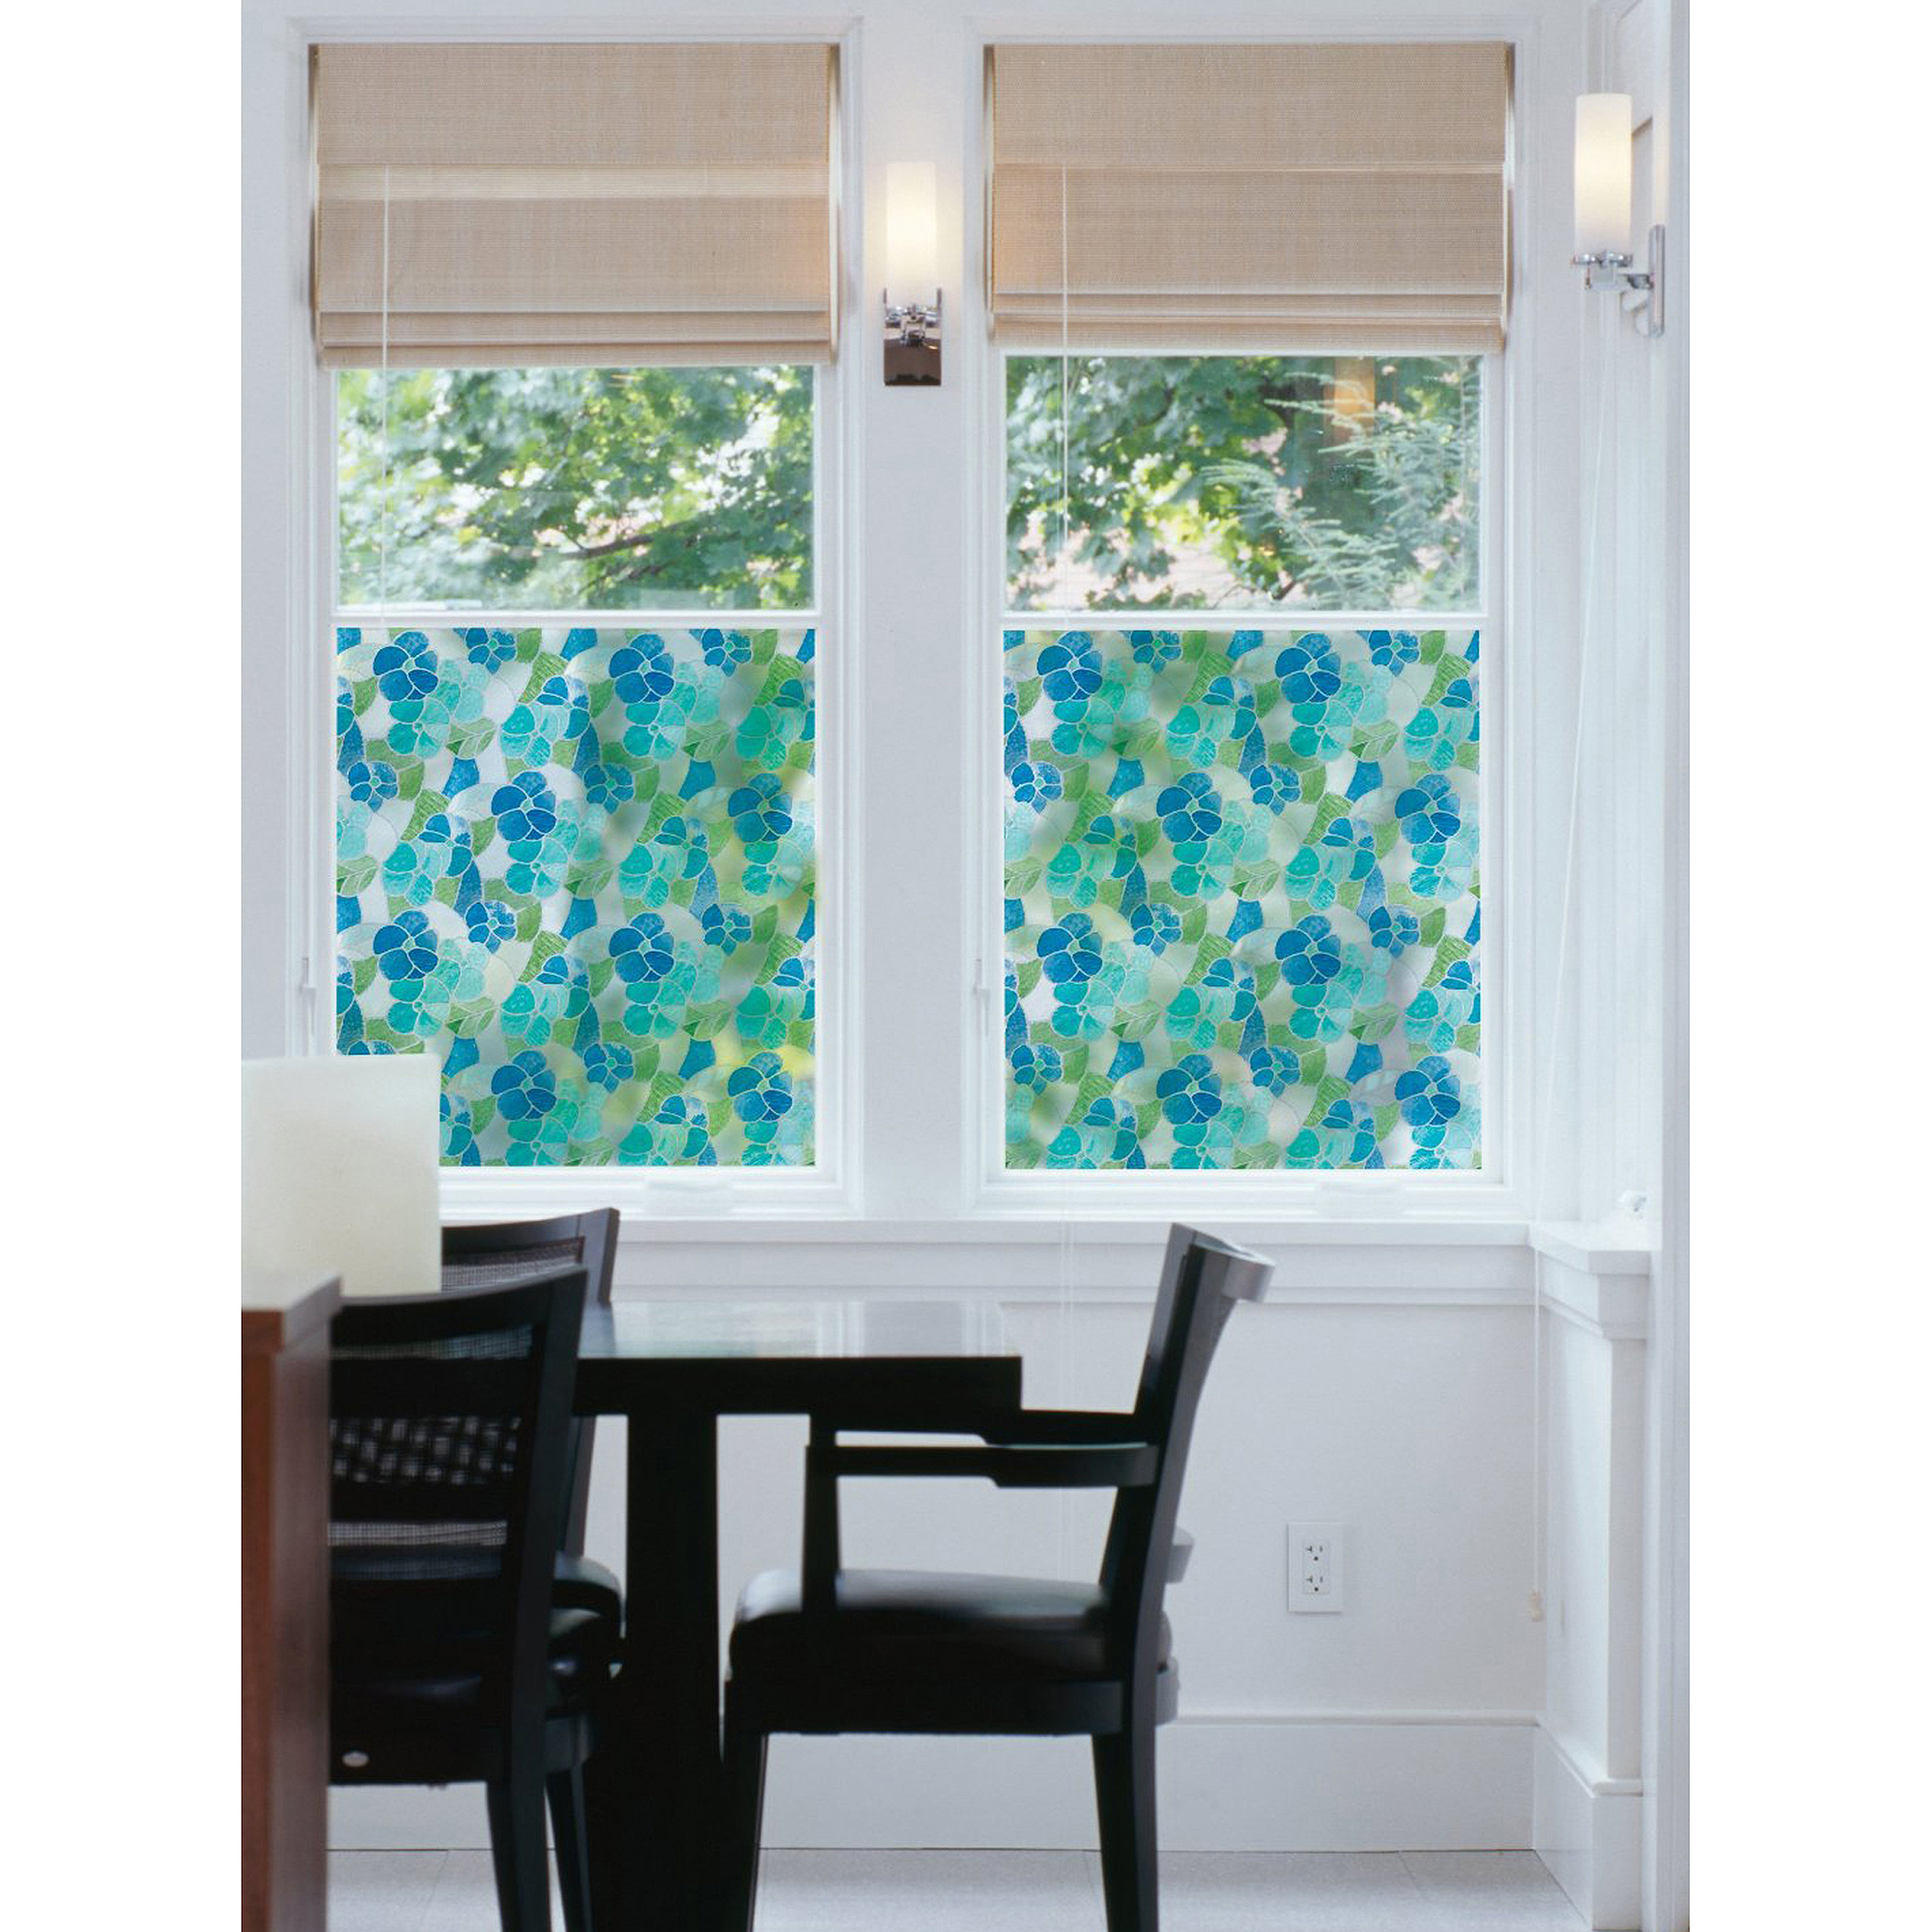 brewster blue and green stained glass peel and stick window film walmartcom - Christmas Decorative Window Film